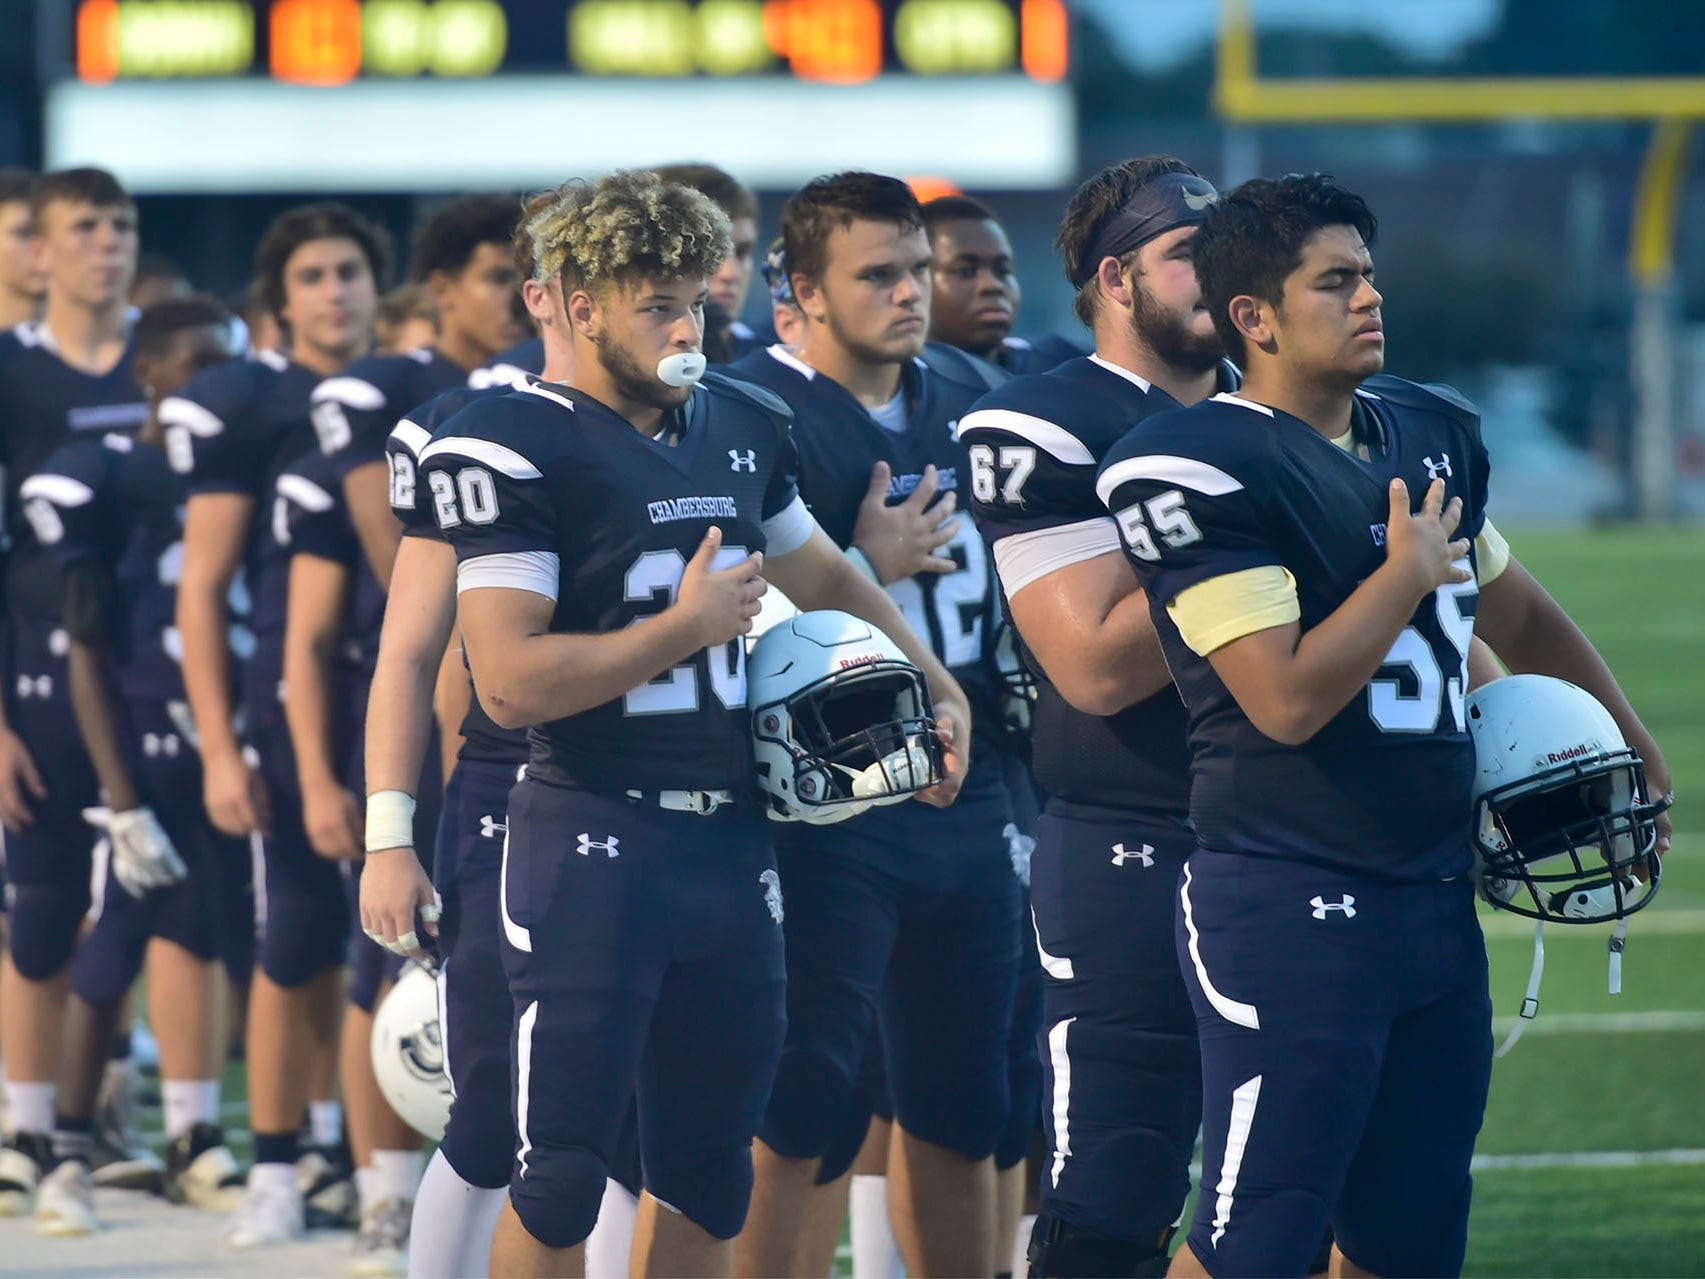 Chambersburg players stand for the National Anthem. Chambersburg defeated Red Lion 28-19 in PIAA football on Friday, Sept. 7, 2018.